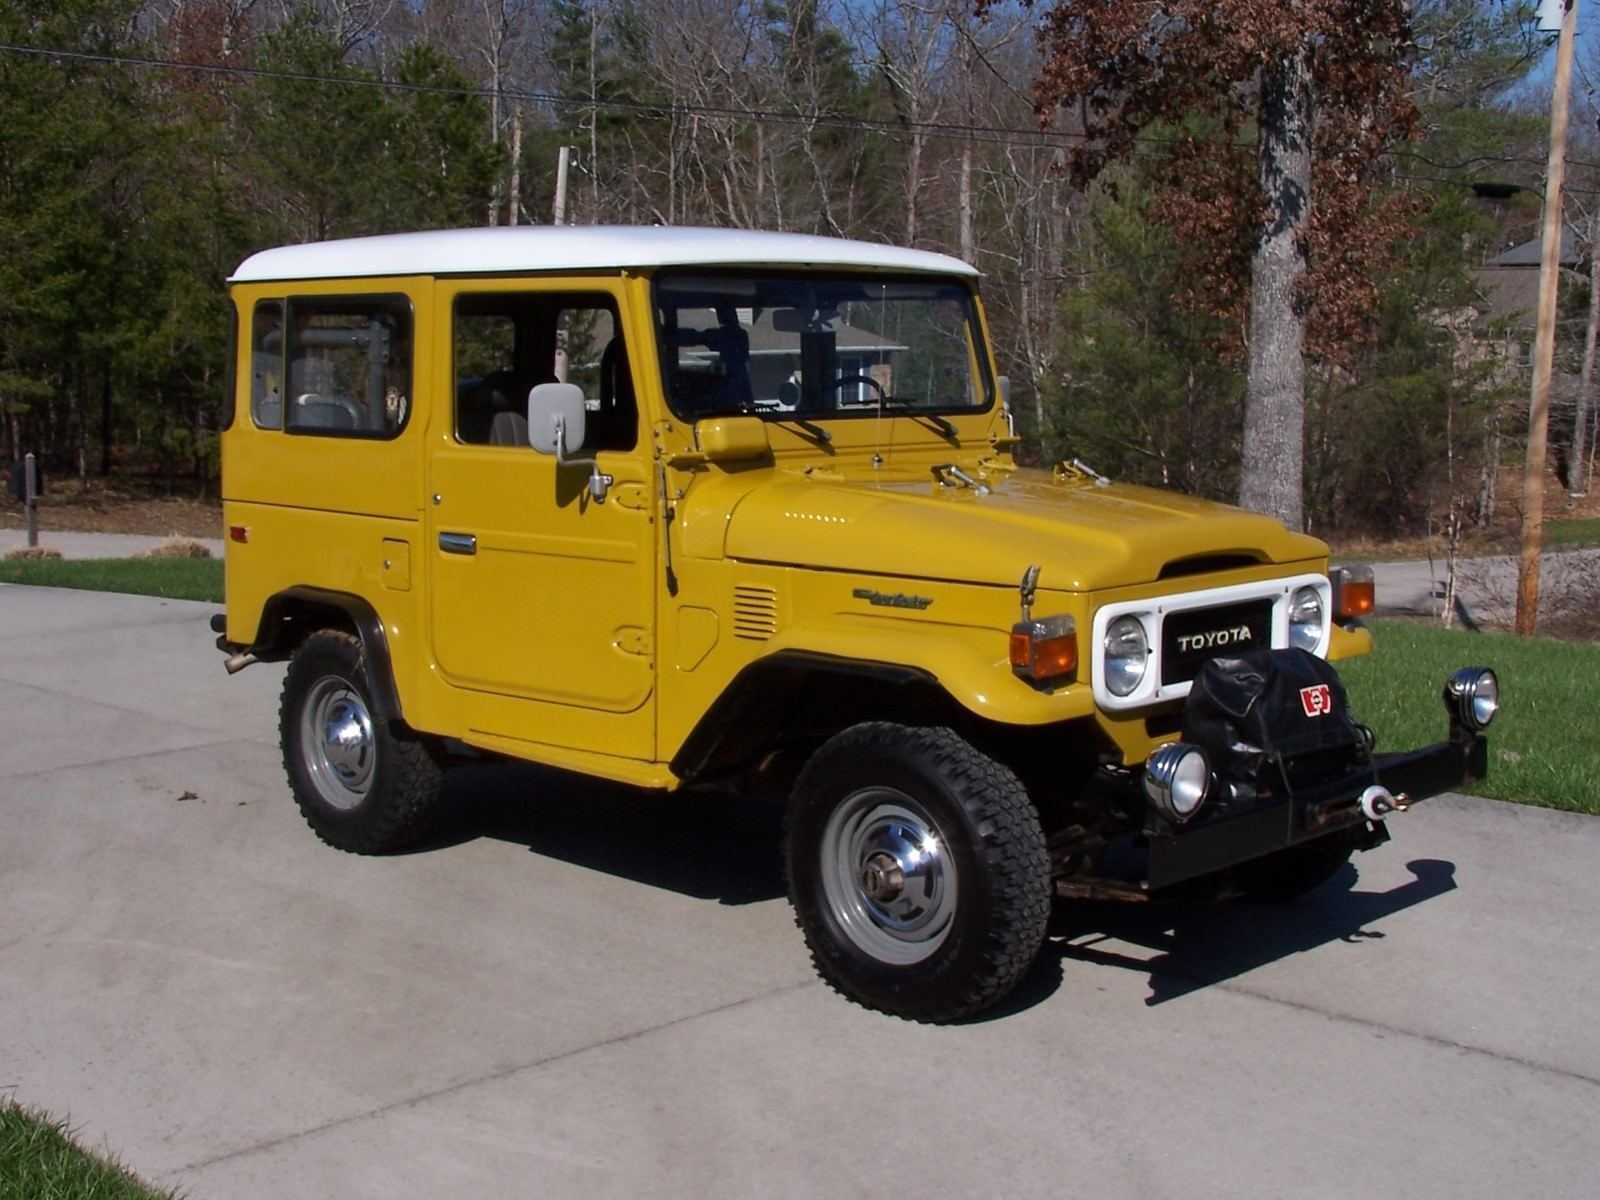 Land Cruiser Of The Day! – Enter the world of Toyota Land Cruisers